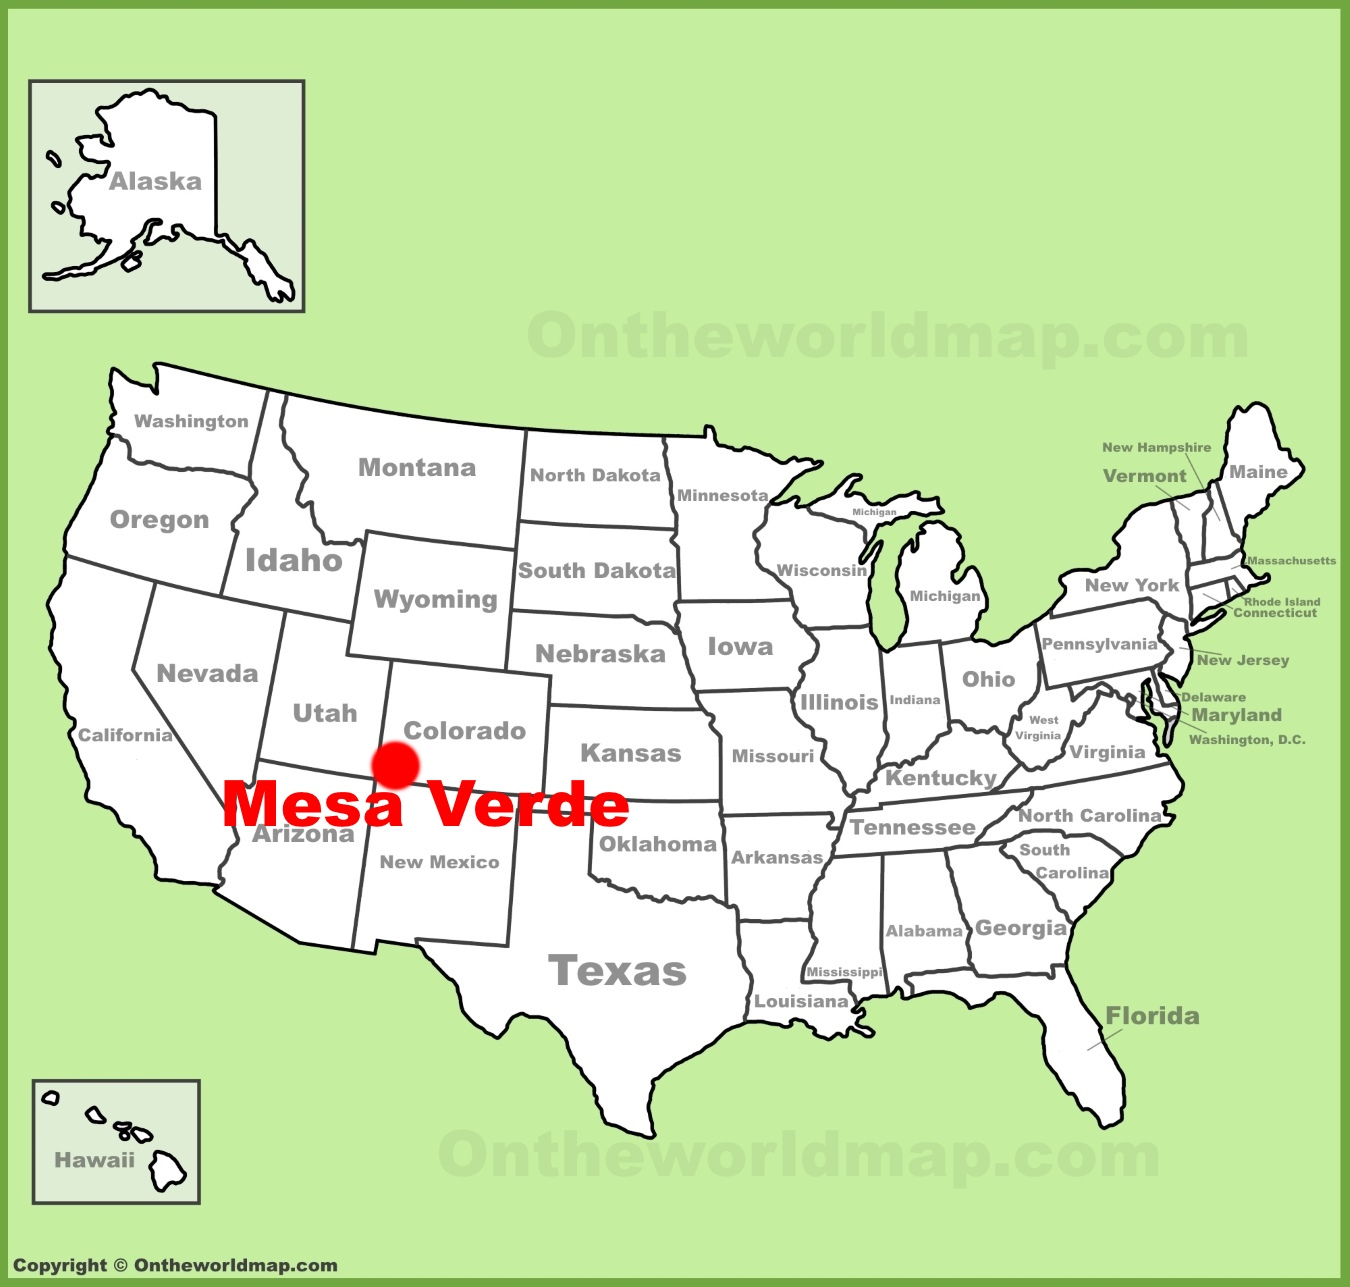 Mesa Verde location on the U.S. Map